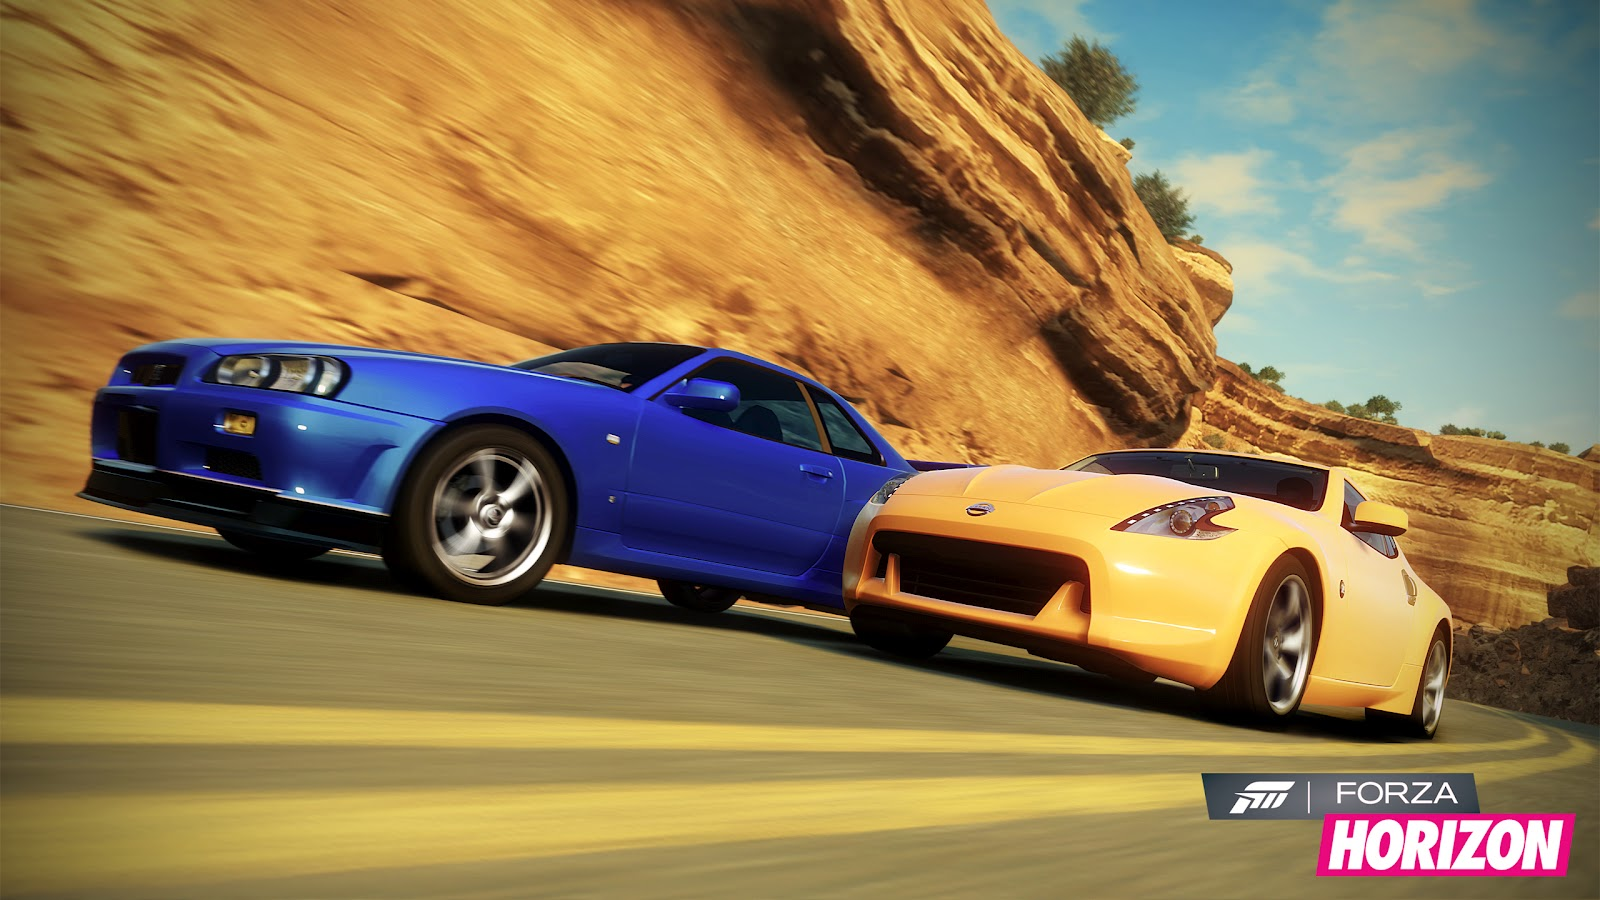 Forza Horizon HD & Widescreen Wallpaper 0.908087667620661